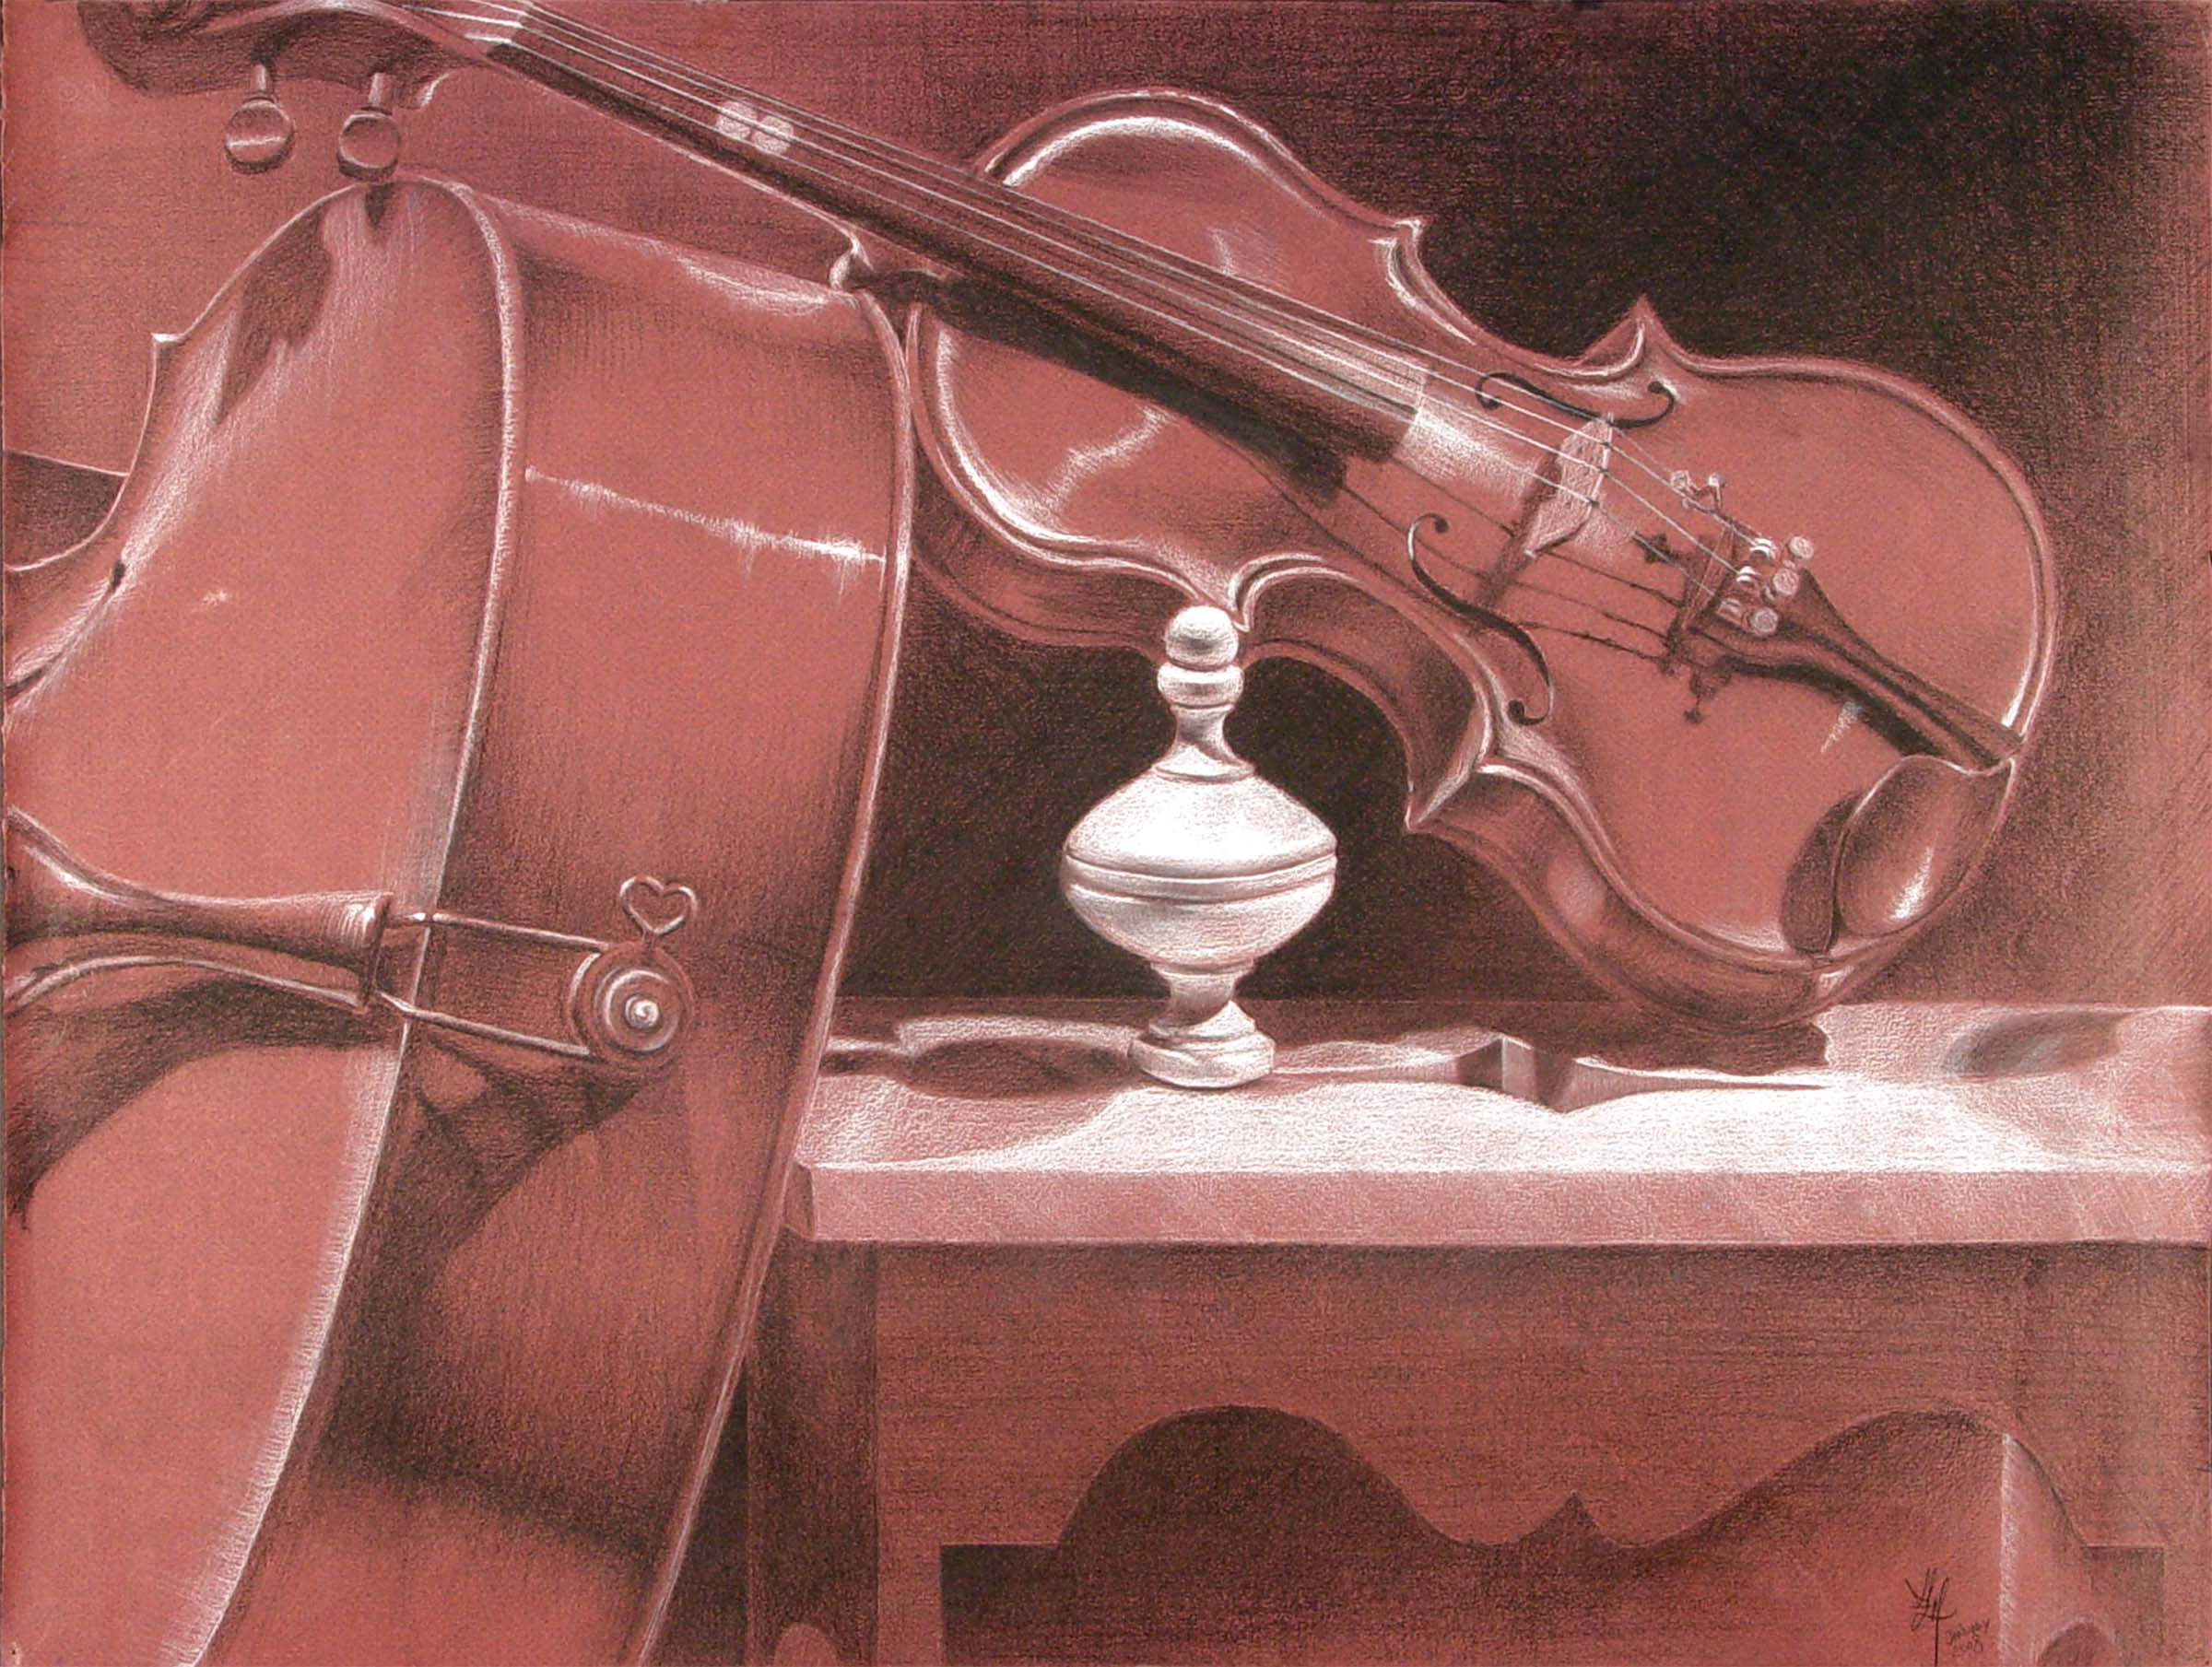 A drawing of a violin resting on a cello and framing a bottle that itself looks like something out of sheet music.